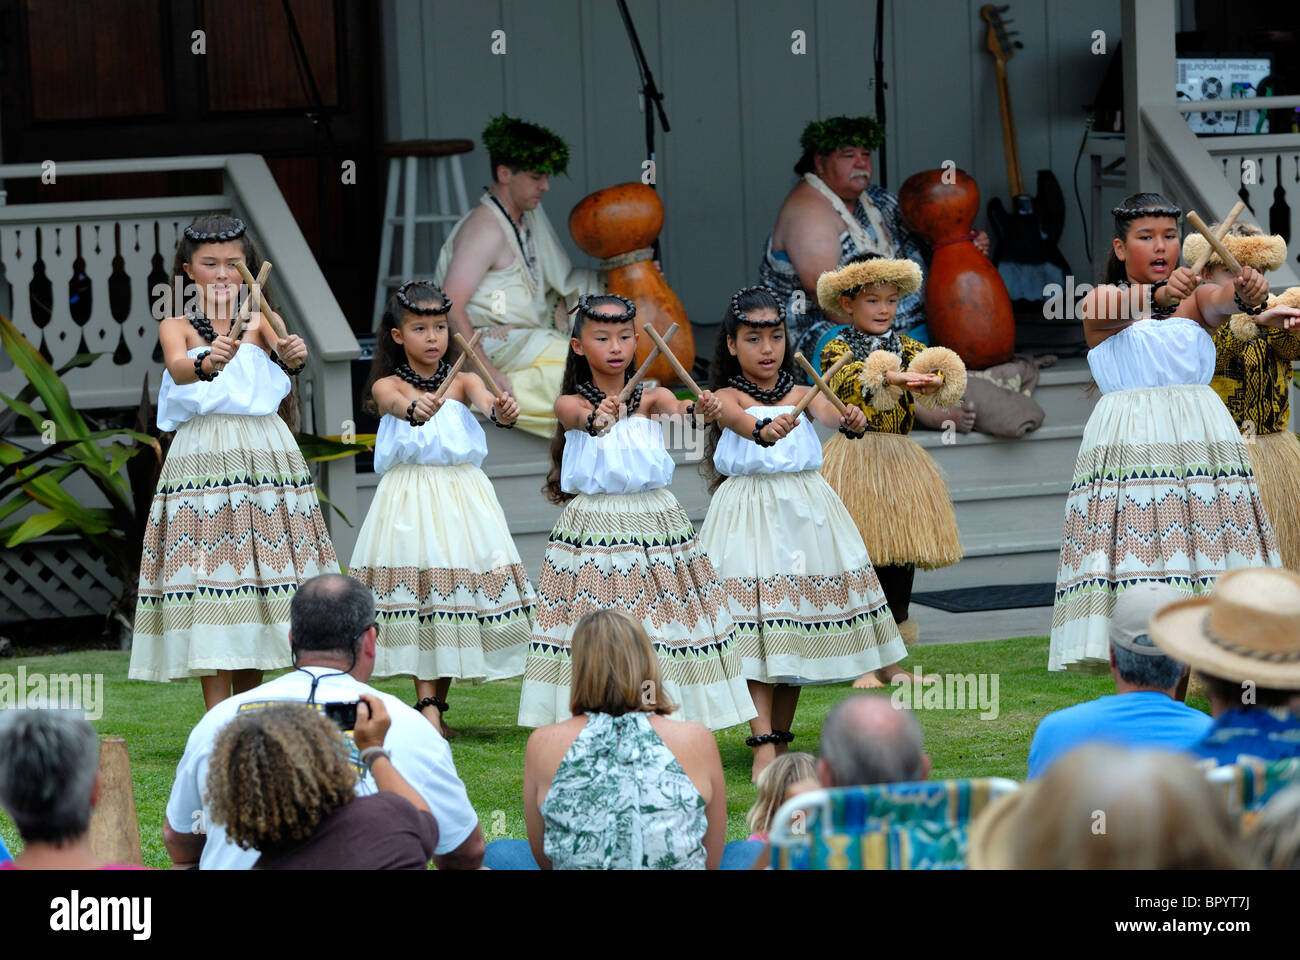 Children performing traditional Hawaiian music and dance at the Hulihe'e Palace, in honour of Hawaiian royalty. - Stock Image